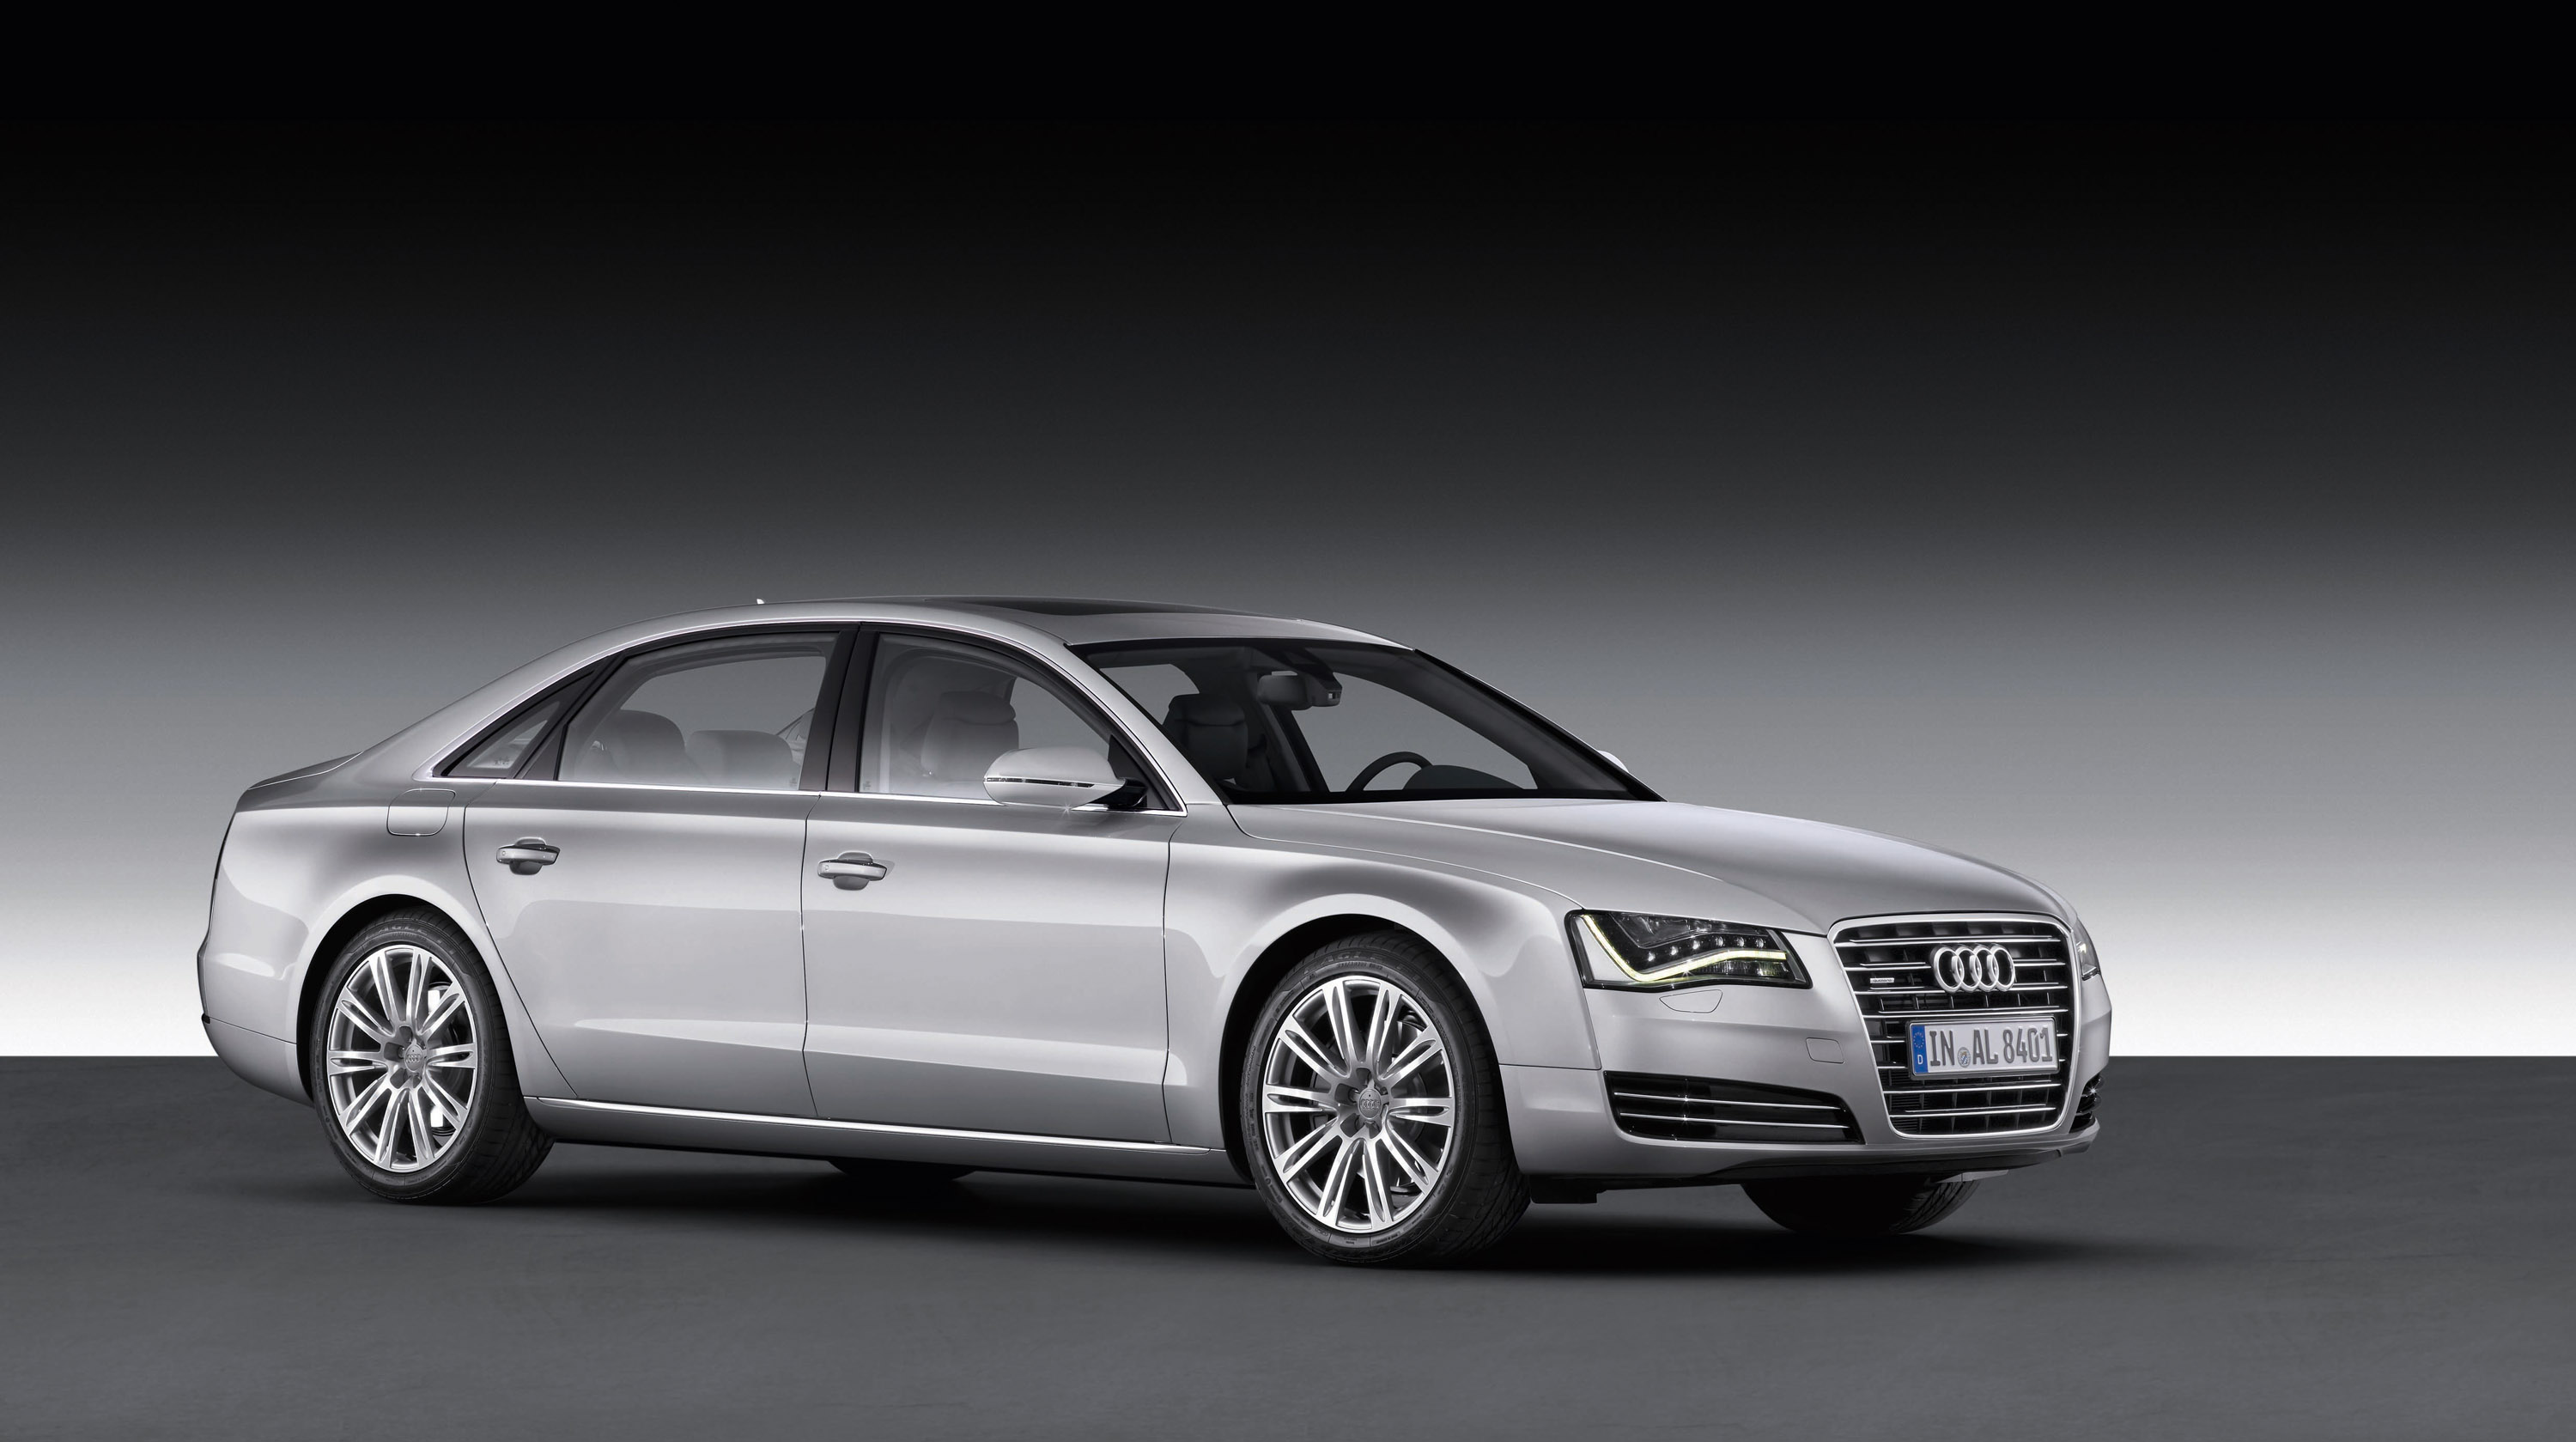 2011 audi a8 l new era of styling and comfort. Black Bedroom Furniture Sets. Home Design Ideas